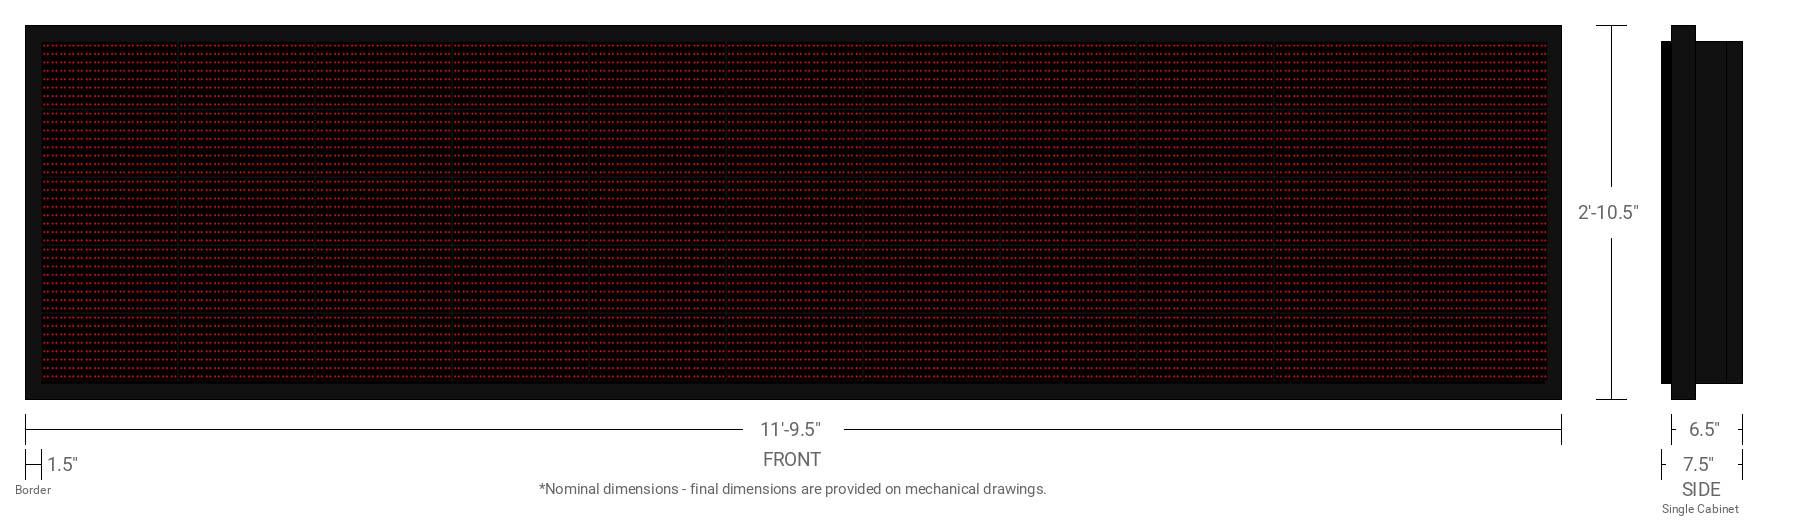 Polaris 20mm 40x176 Double Sided Grayscale Red LED Display